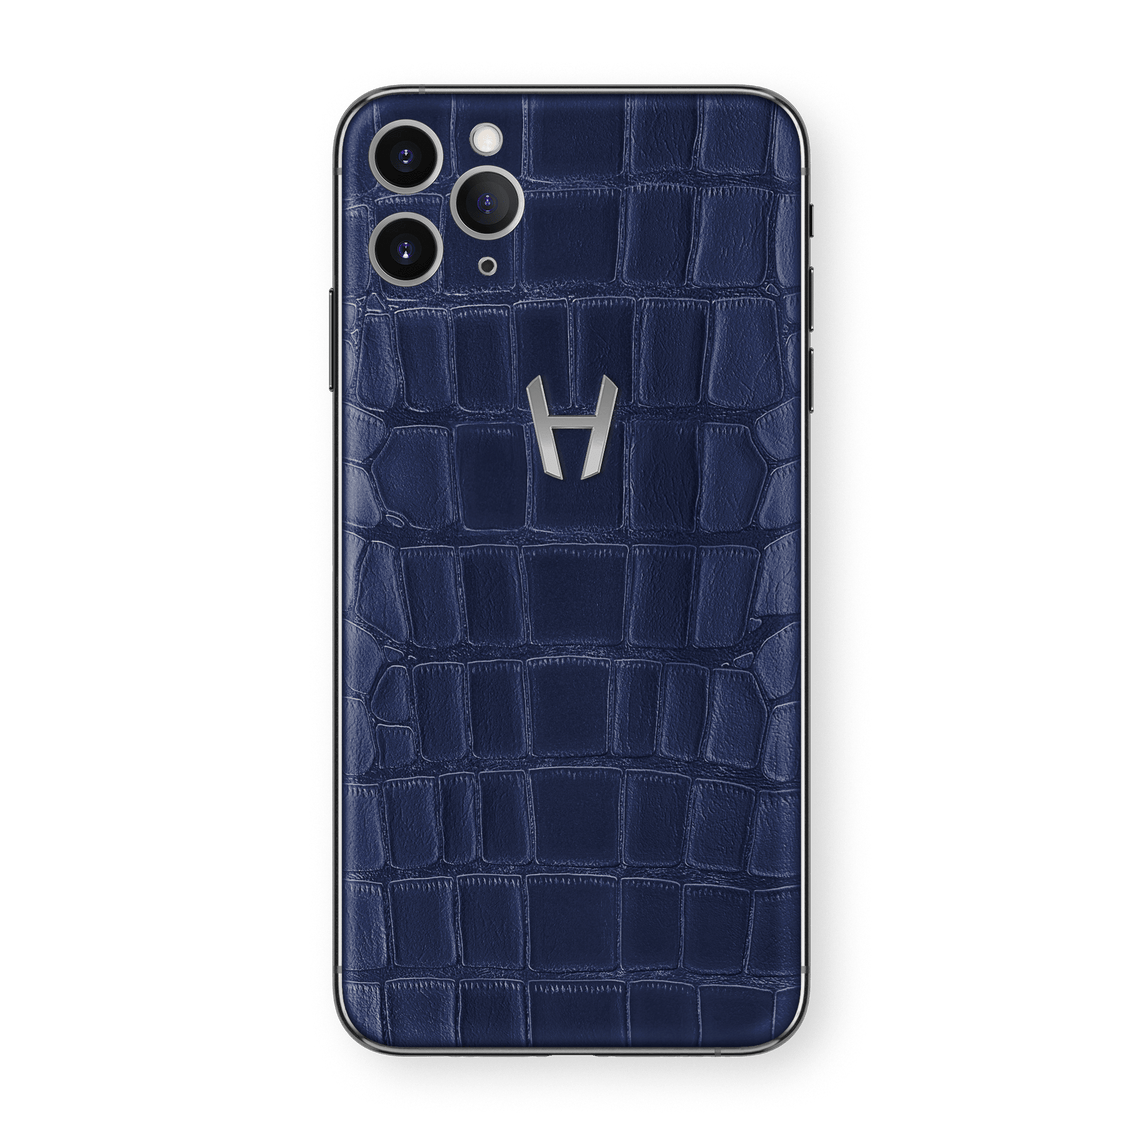 Hadoro iPhone 11 Pro Max Signature | Alligator - Stainless Steel- Navy Blue